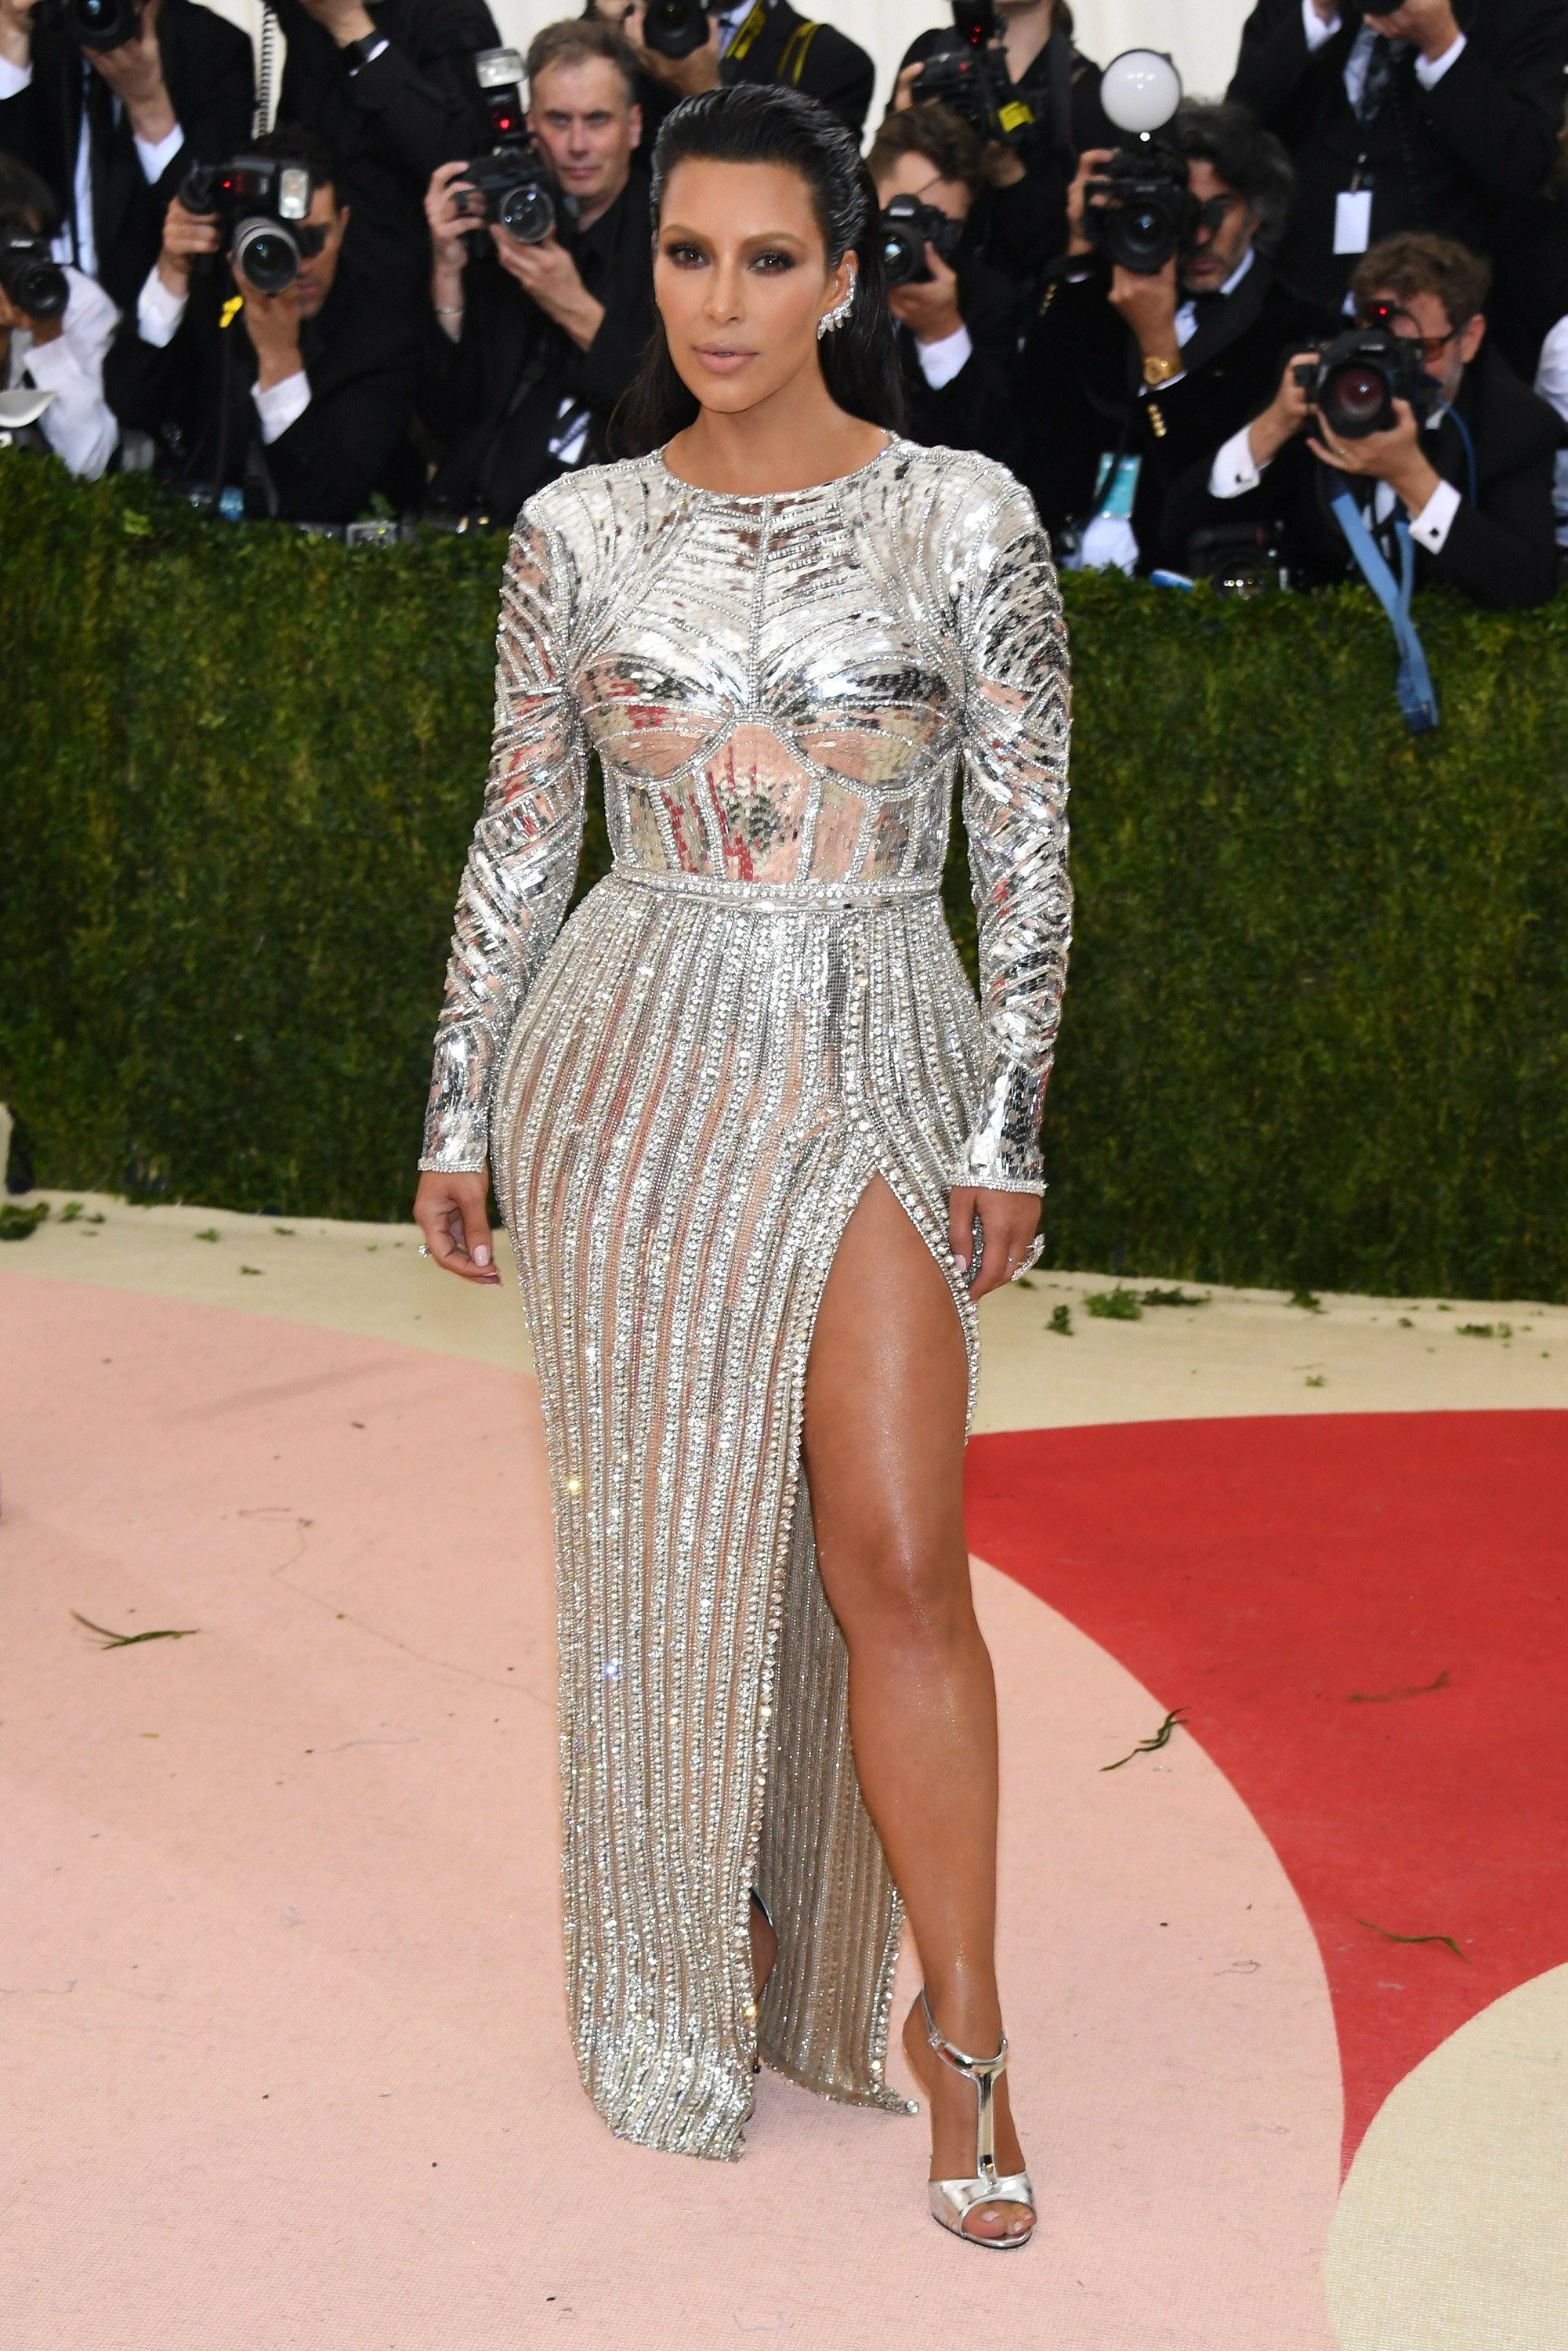 The Best Met Gala Looks Of All Time Inline Met Gala Dresses Met Gala Looks Celebrity Dresses